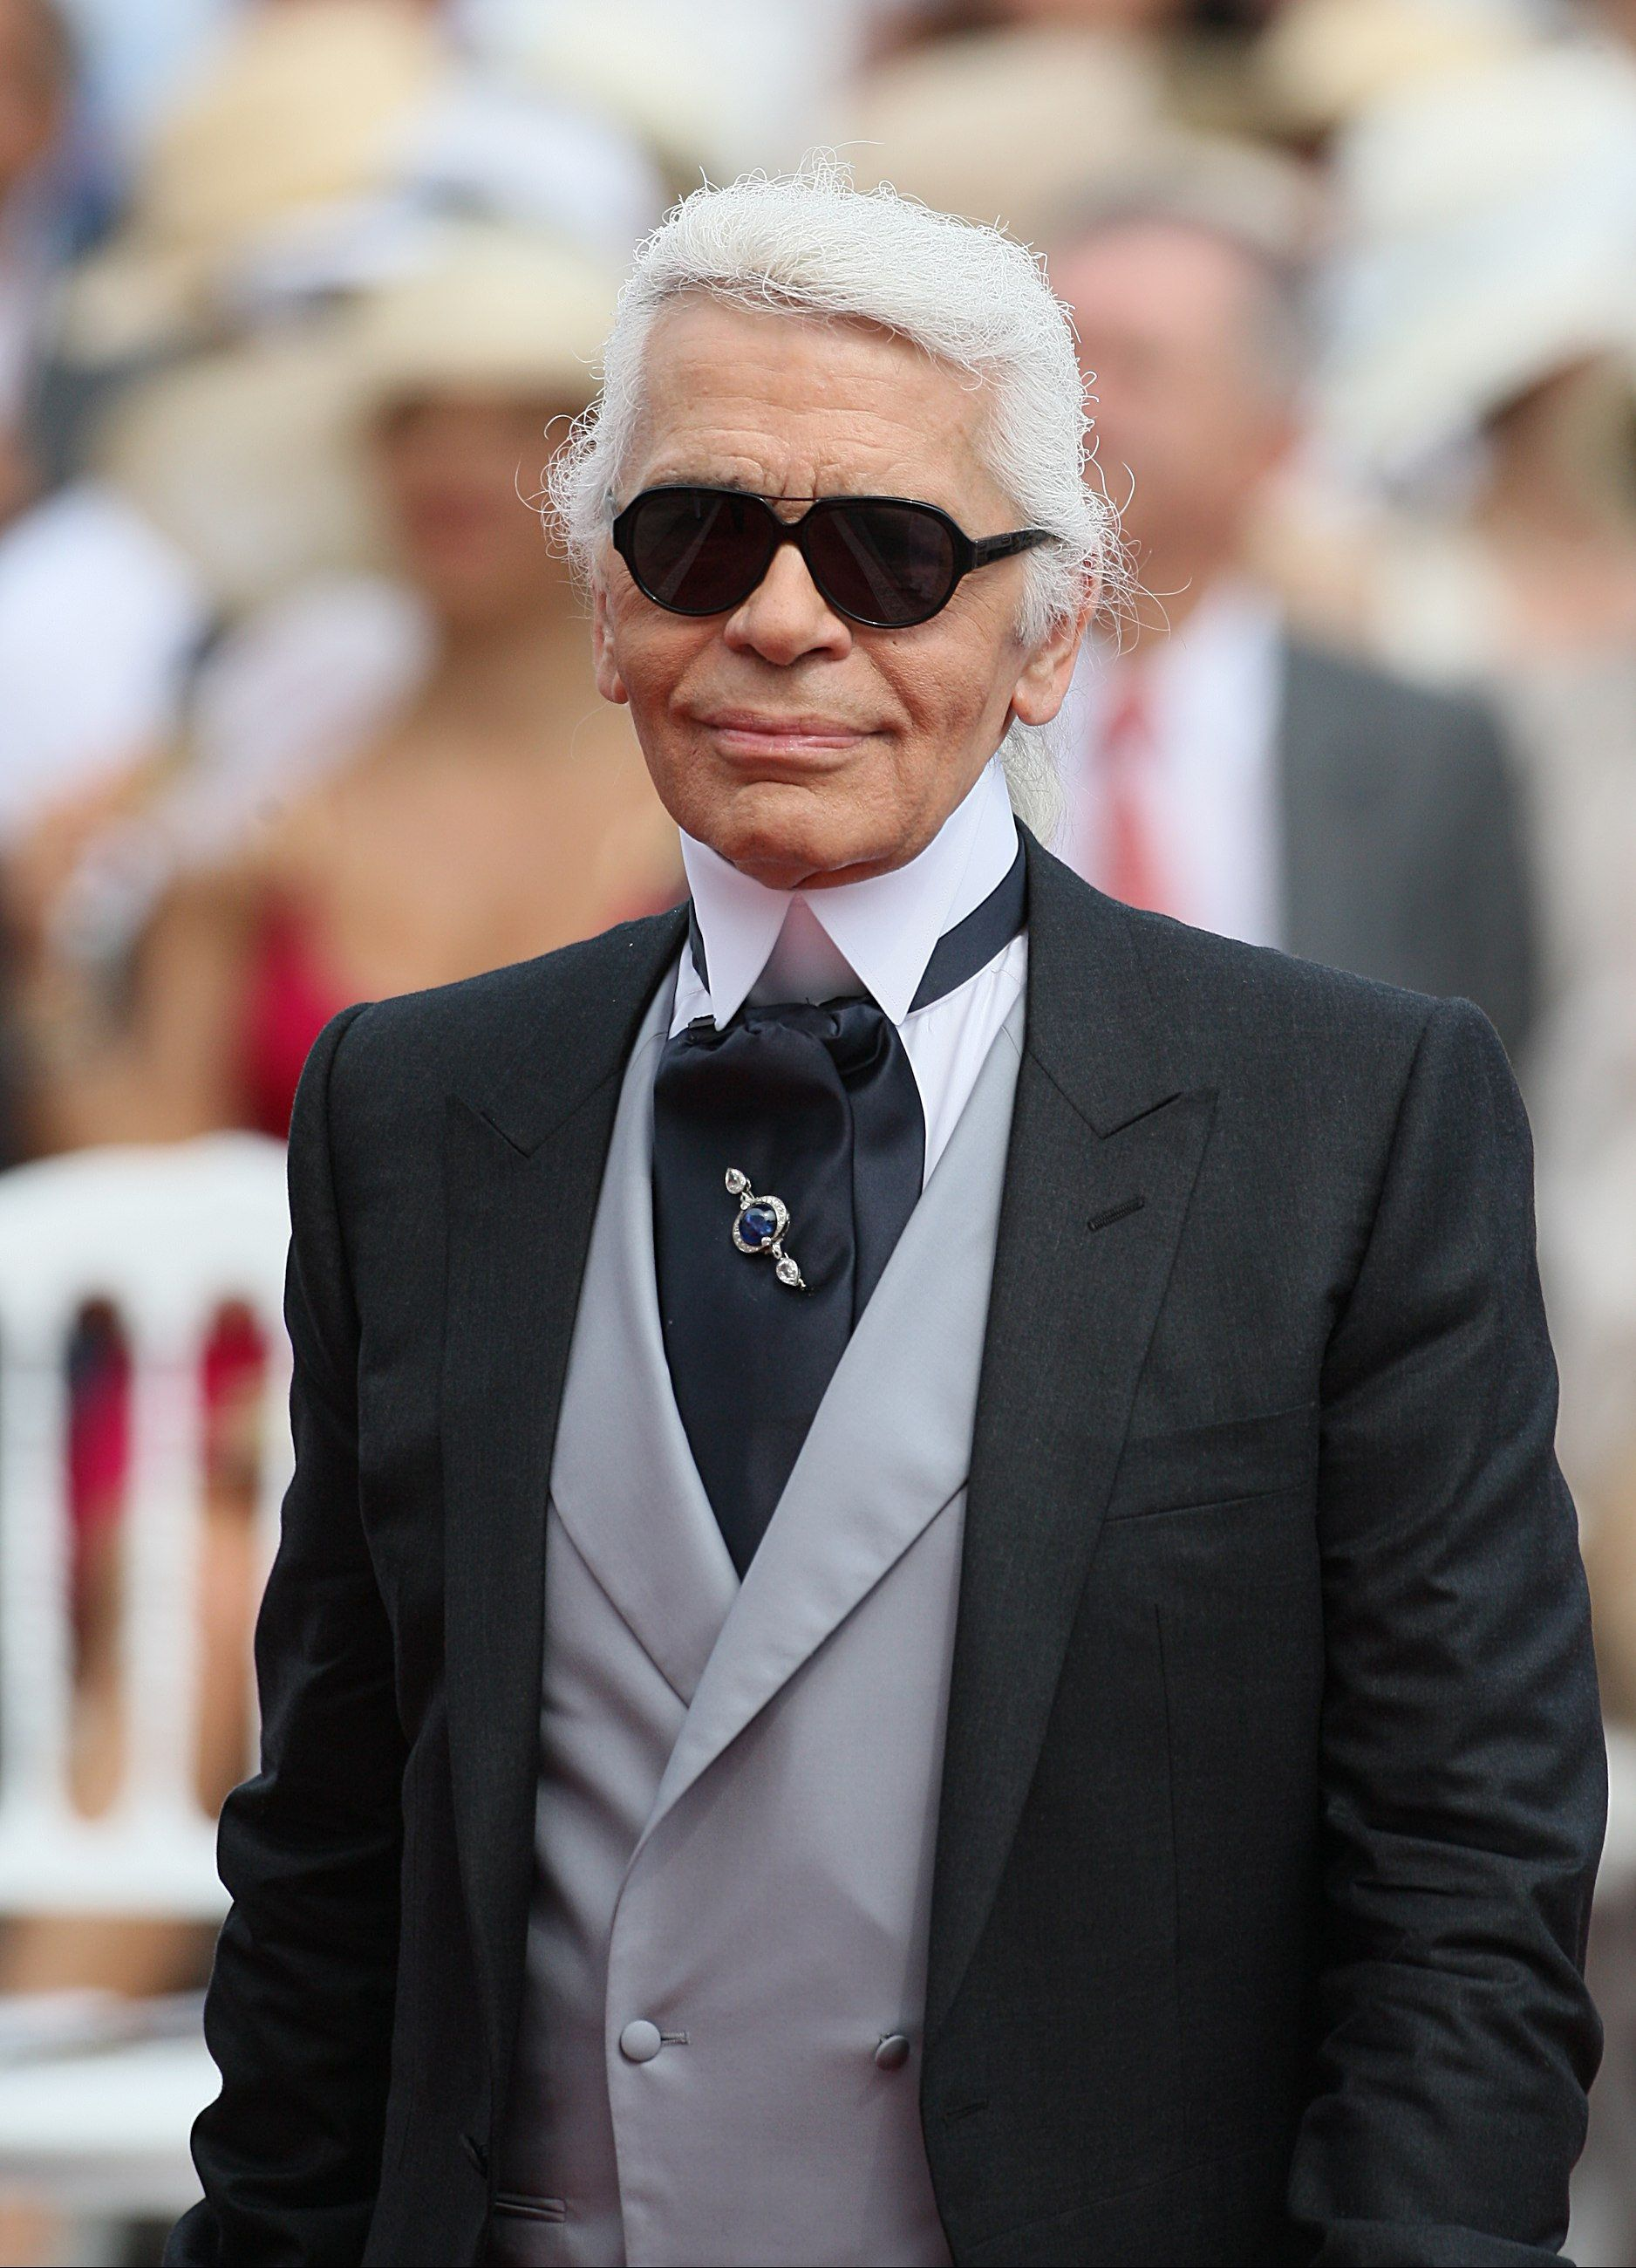 In Death, Karl Lagerfeld Will Be Remembered For His Shortcomings As Well As His Ground-Breaking